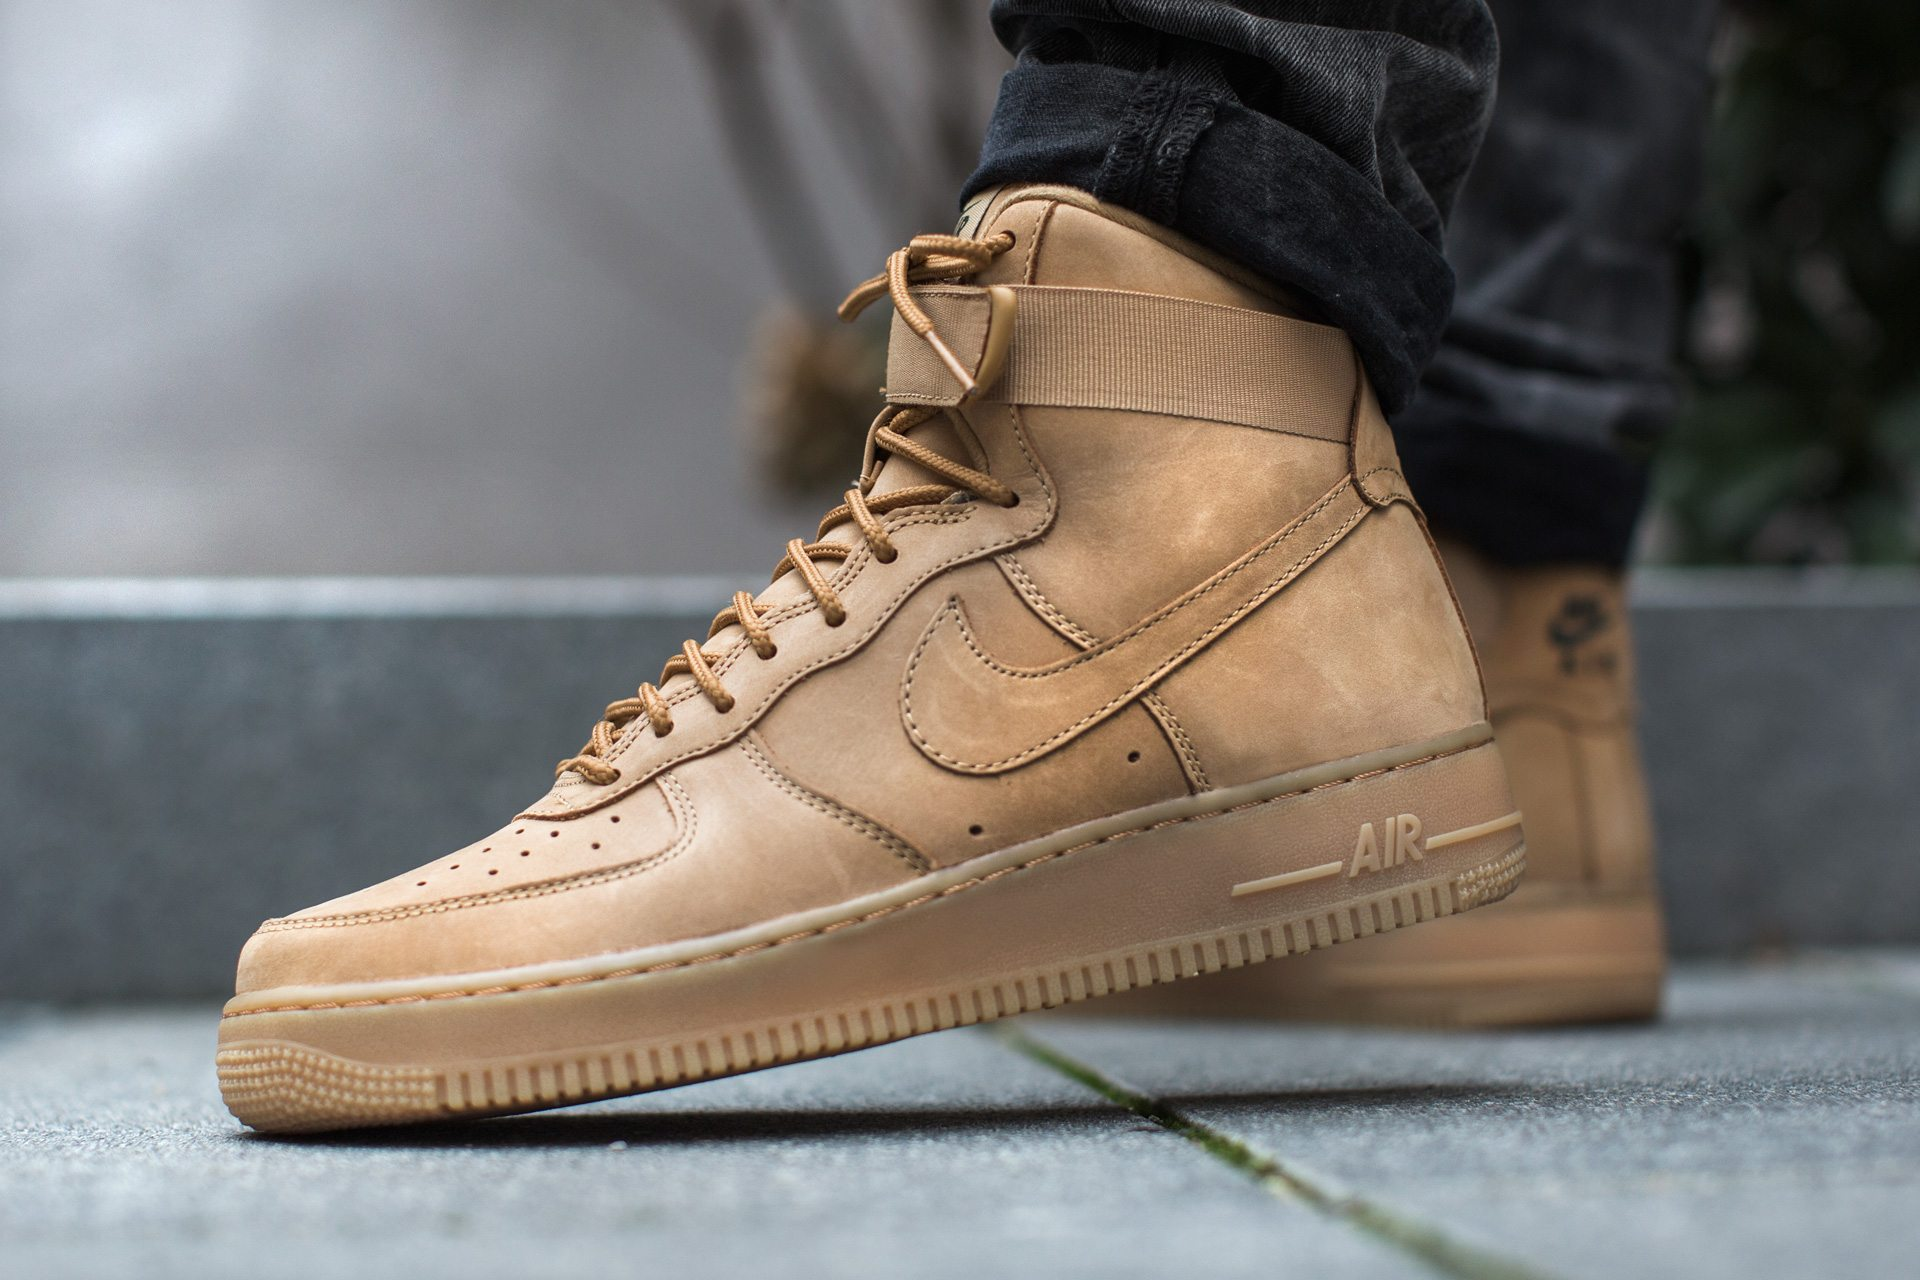 Nike Air Force 1 High Flax 1